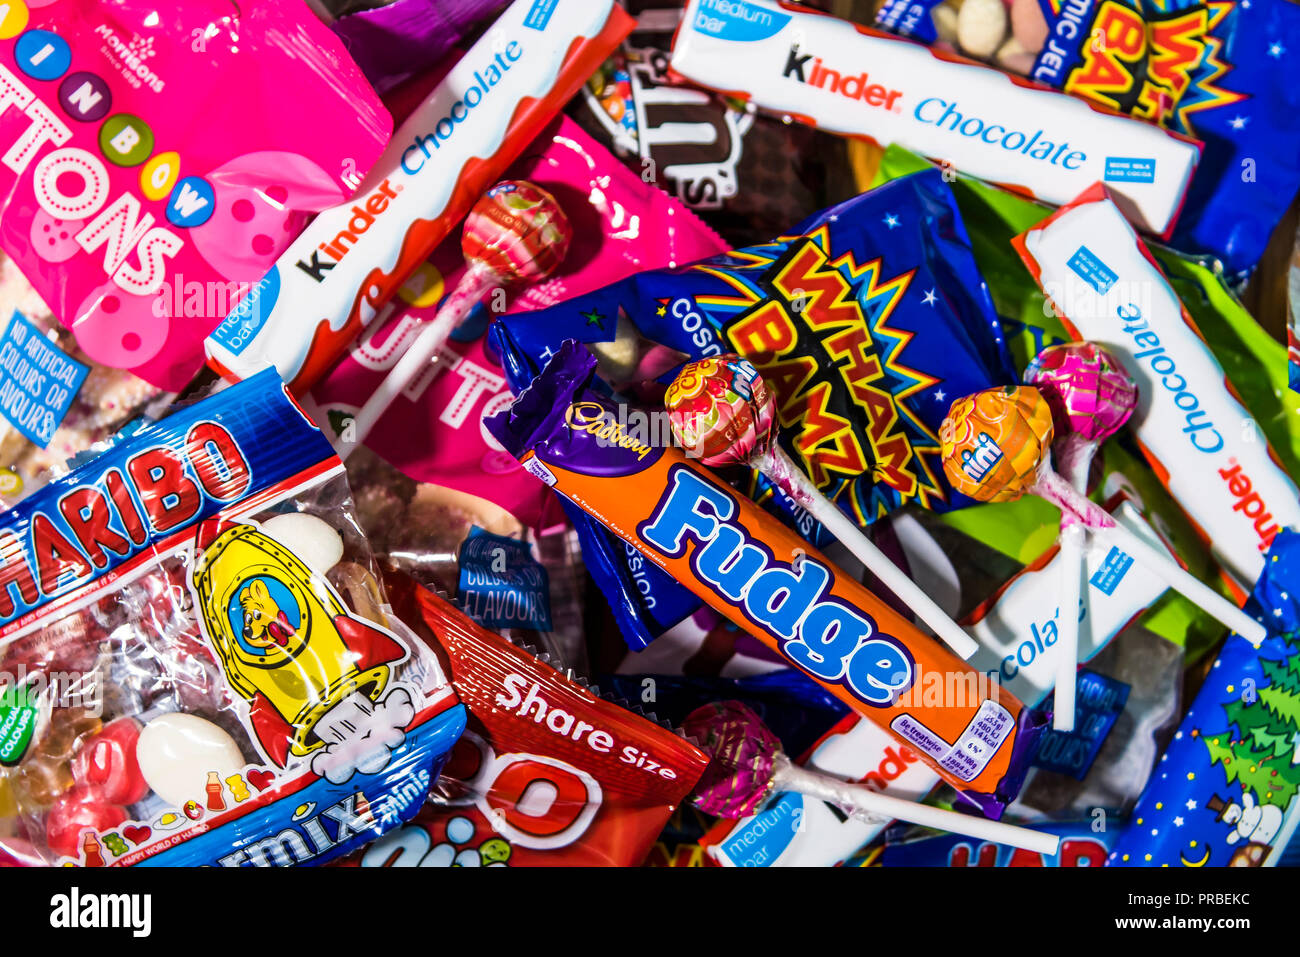 Assorted candy chocolate bars and sweets in brightly coloured wrappers. - Stock Image